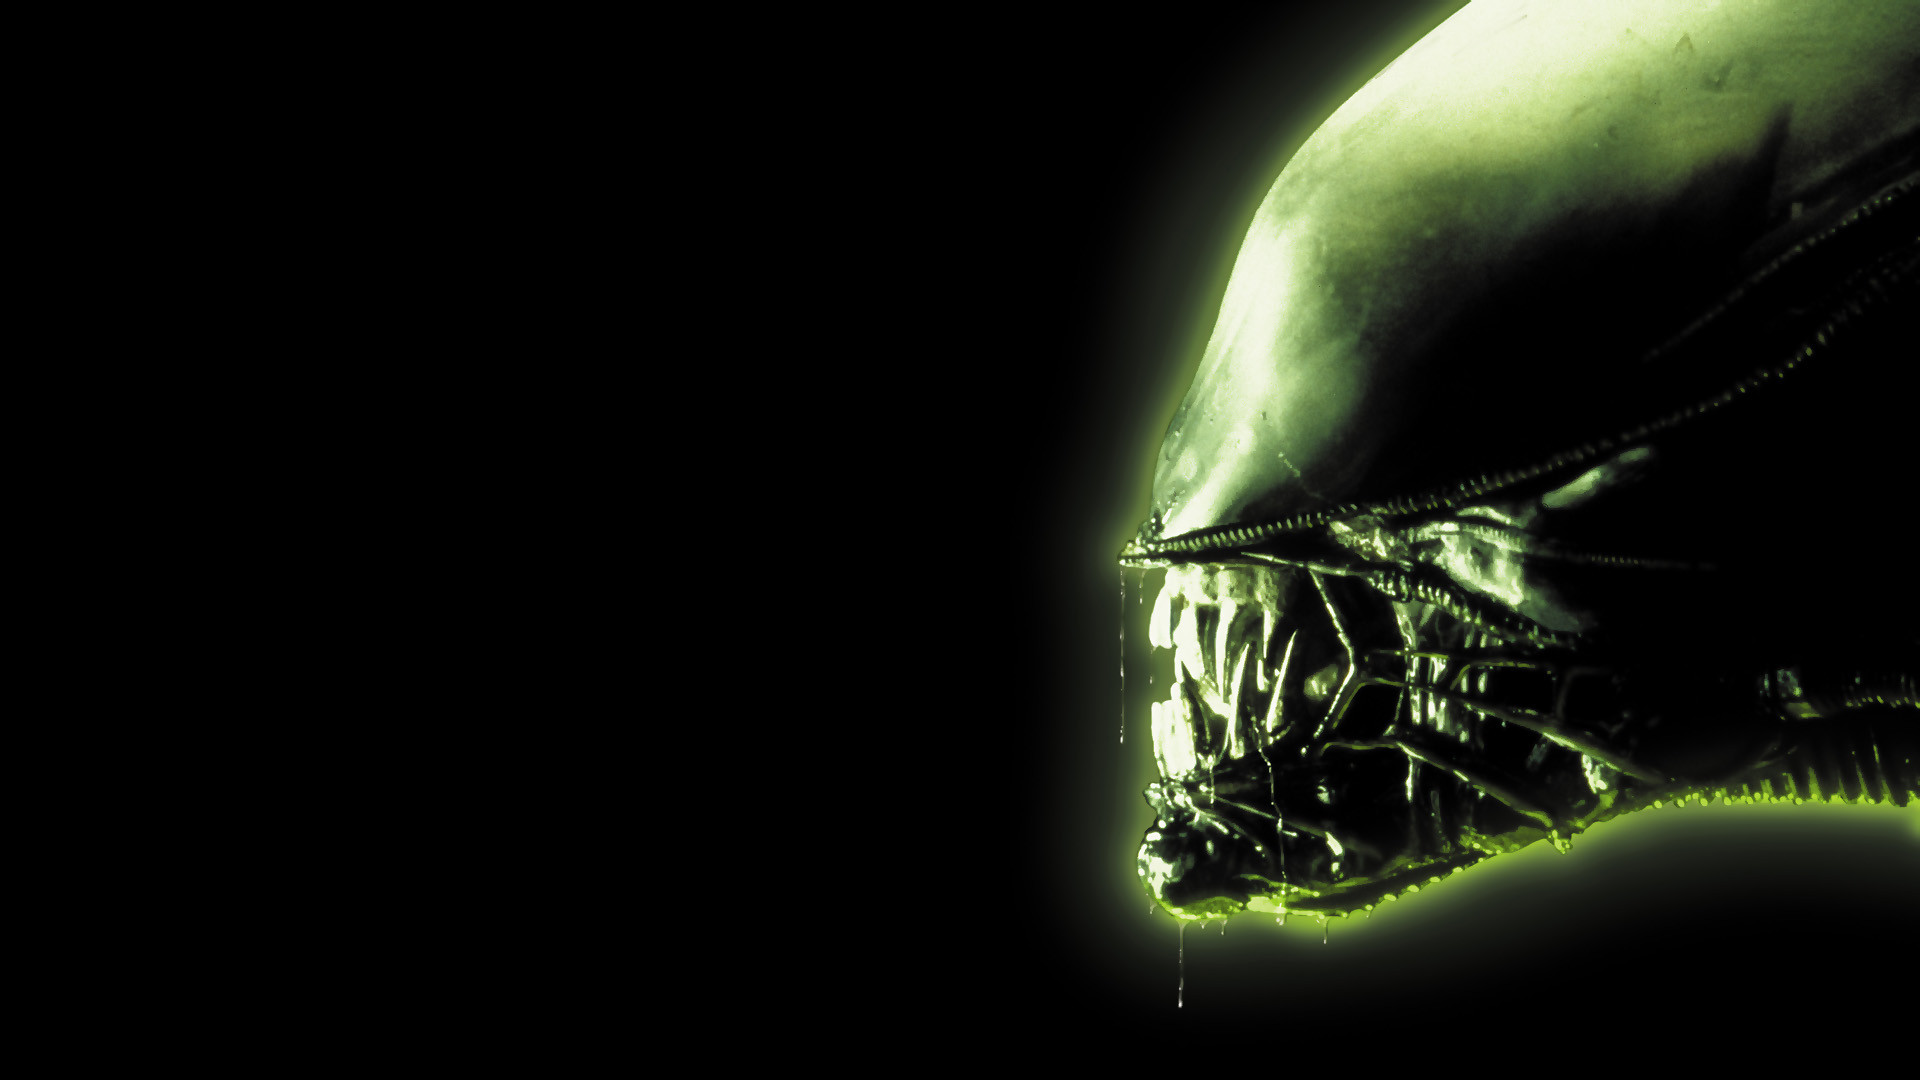 69 Alien Wallpaper On Wallpapersafari